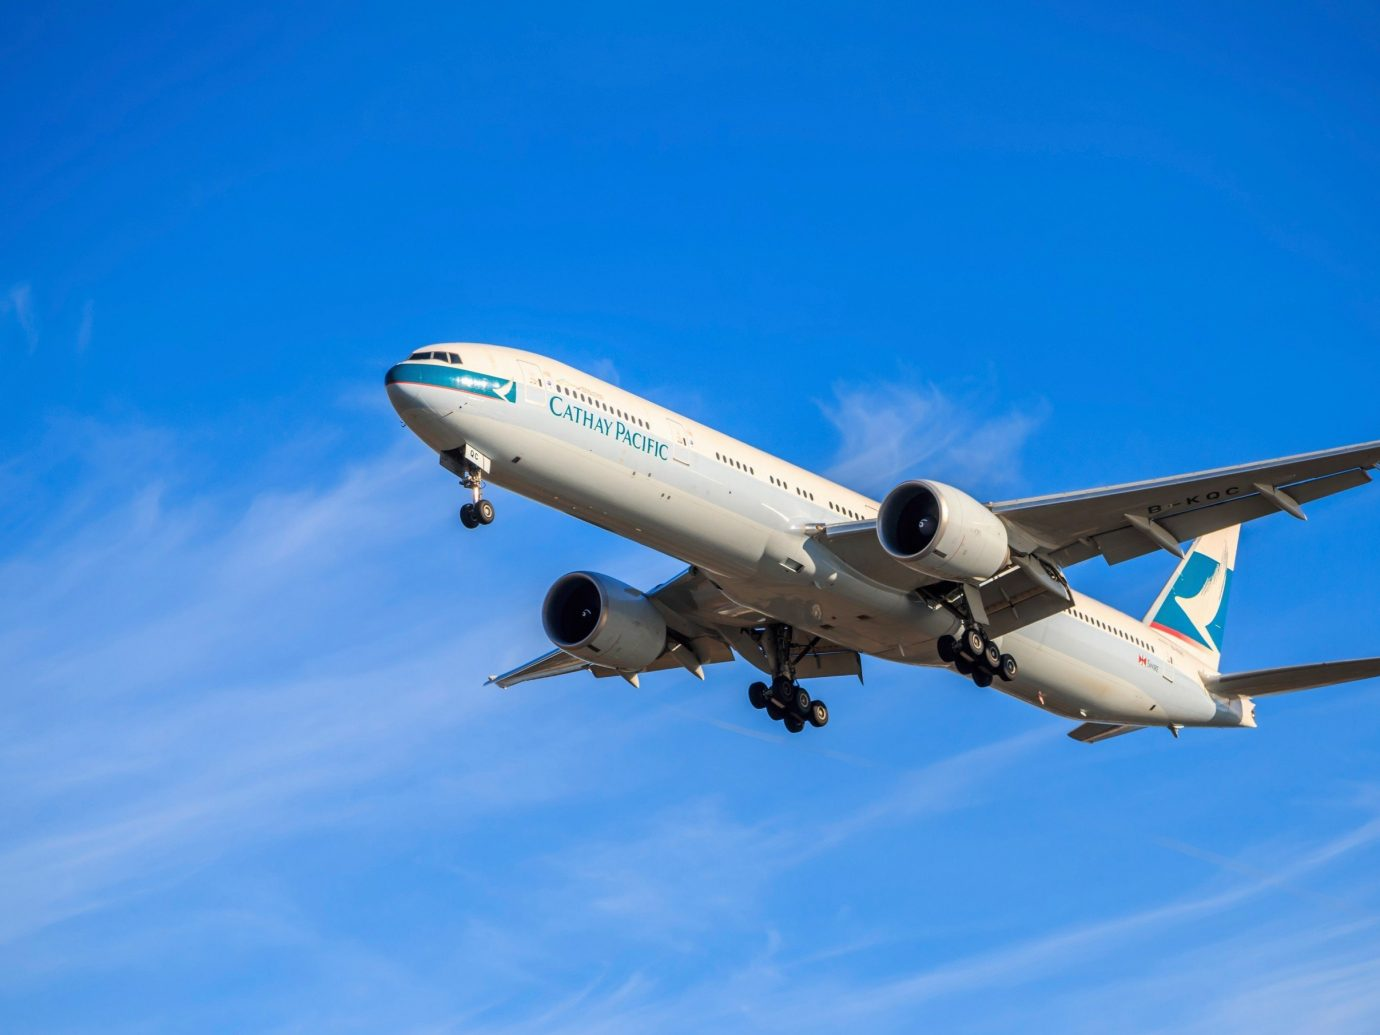 Travel Tips sky plane outdoor airplane flying airliner airline vehicle transport wide body aircraft blue aircraft large air travel boeing jet aviation jet aircraft atmosphere of earth air boeing 777 boeing 767 narrow body aircraft aerospace engineering boeing 757 boeing 787 dreamliner takeoff airbus a330 flight wing cloudy landing day land